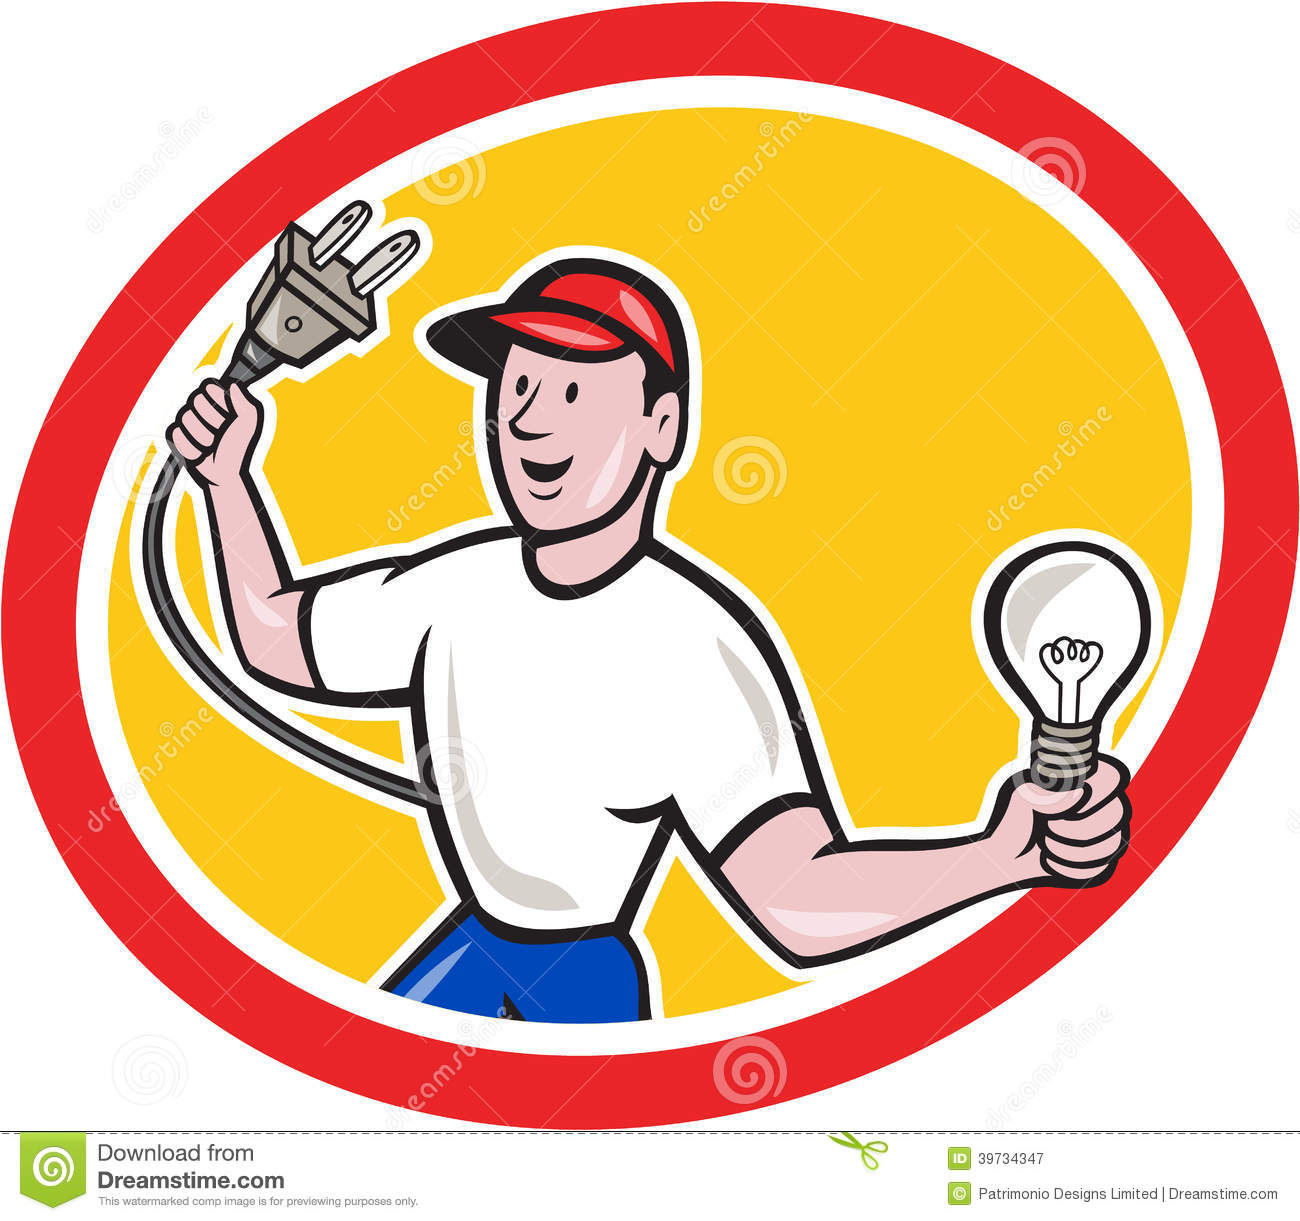 76661 electricsymb additionally Options Tables Desks together with Electrical schematic symbols clip art furthermore Illustration Stock Ic Ne De Prise Lectrique Image47244064 moreover puter Cables. on electrical outlet clip art